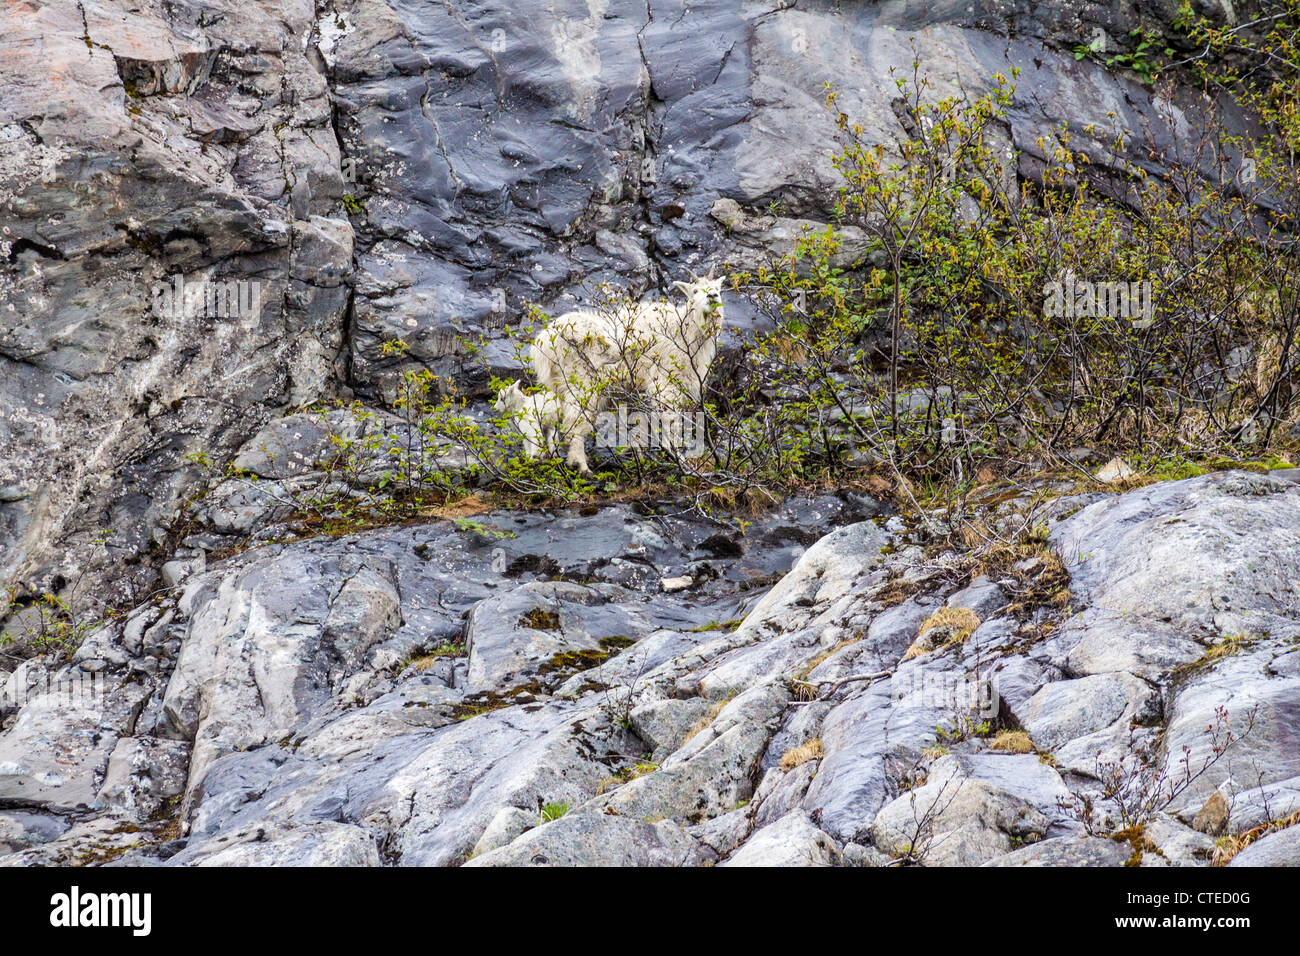 Mountain goat nanny and kid on mountainside in Kenai Fjords National Park. - Stock Image